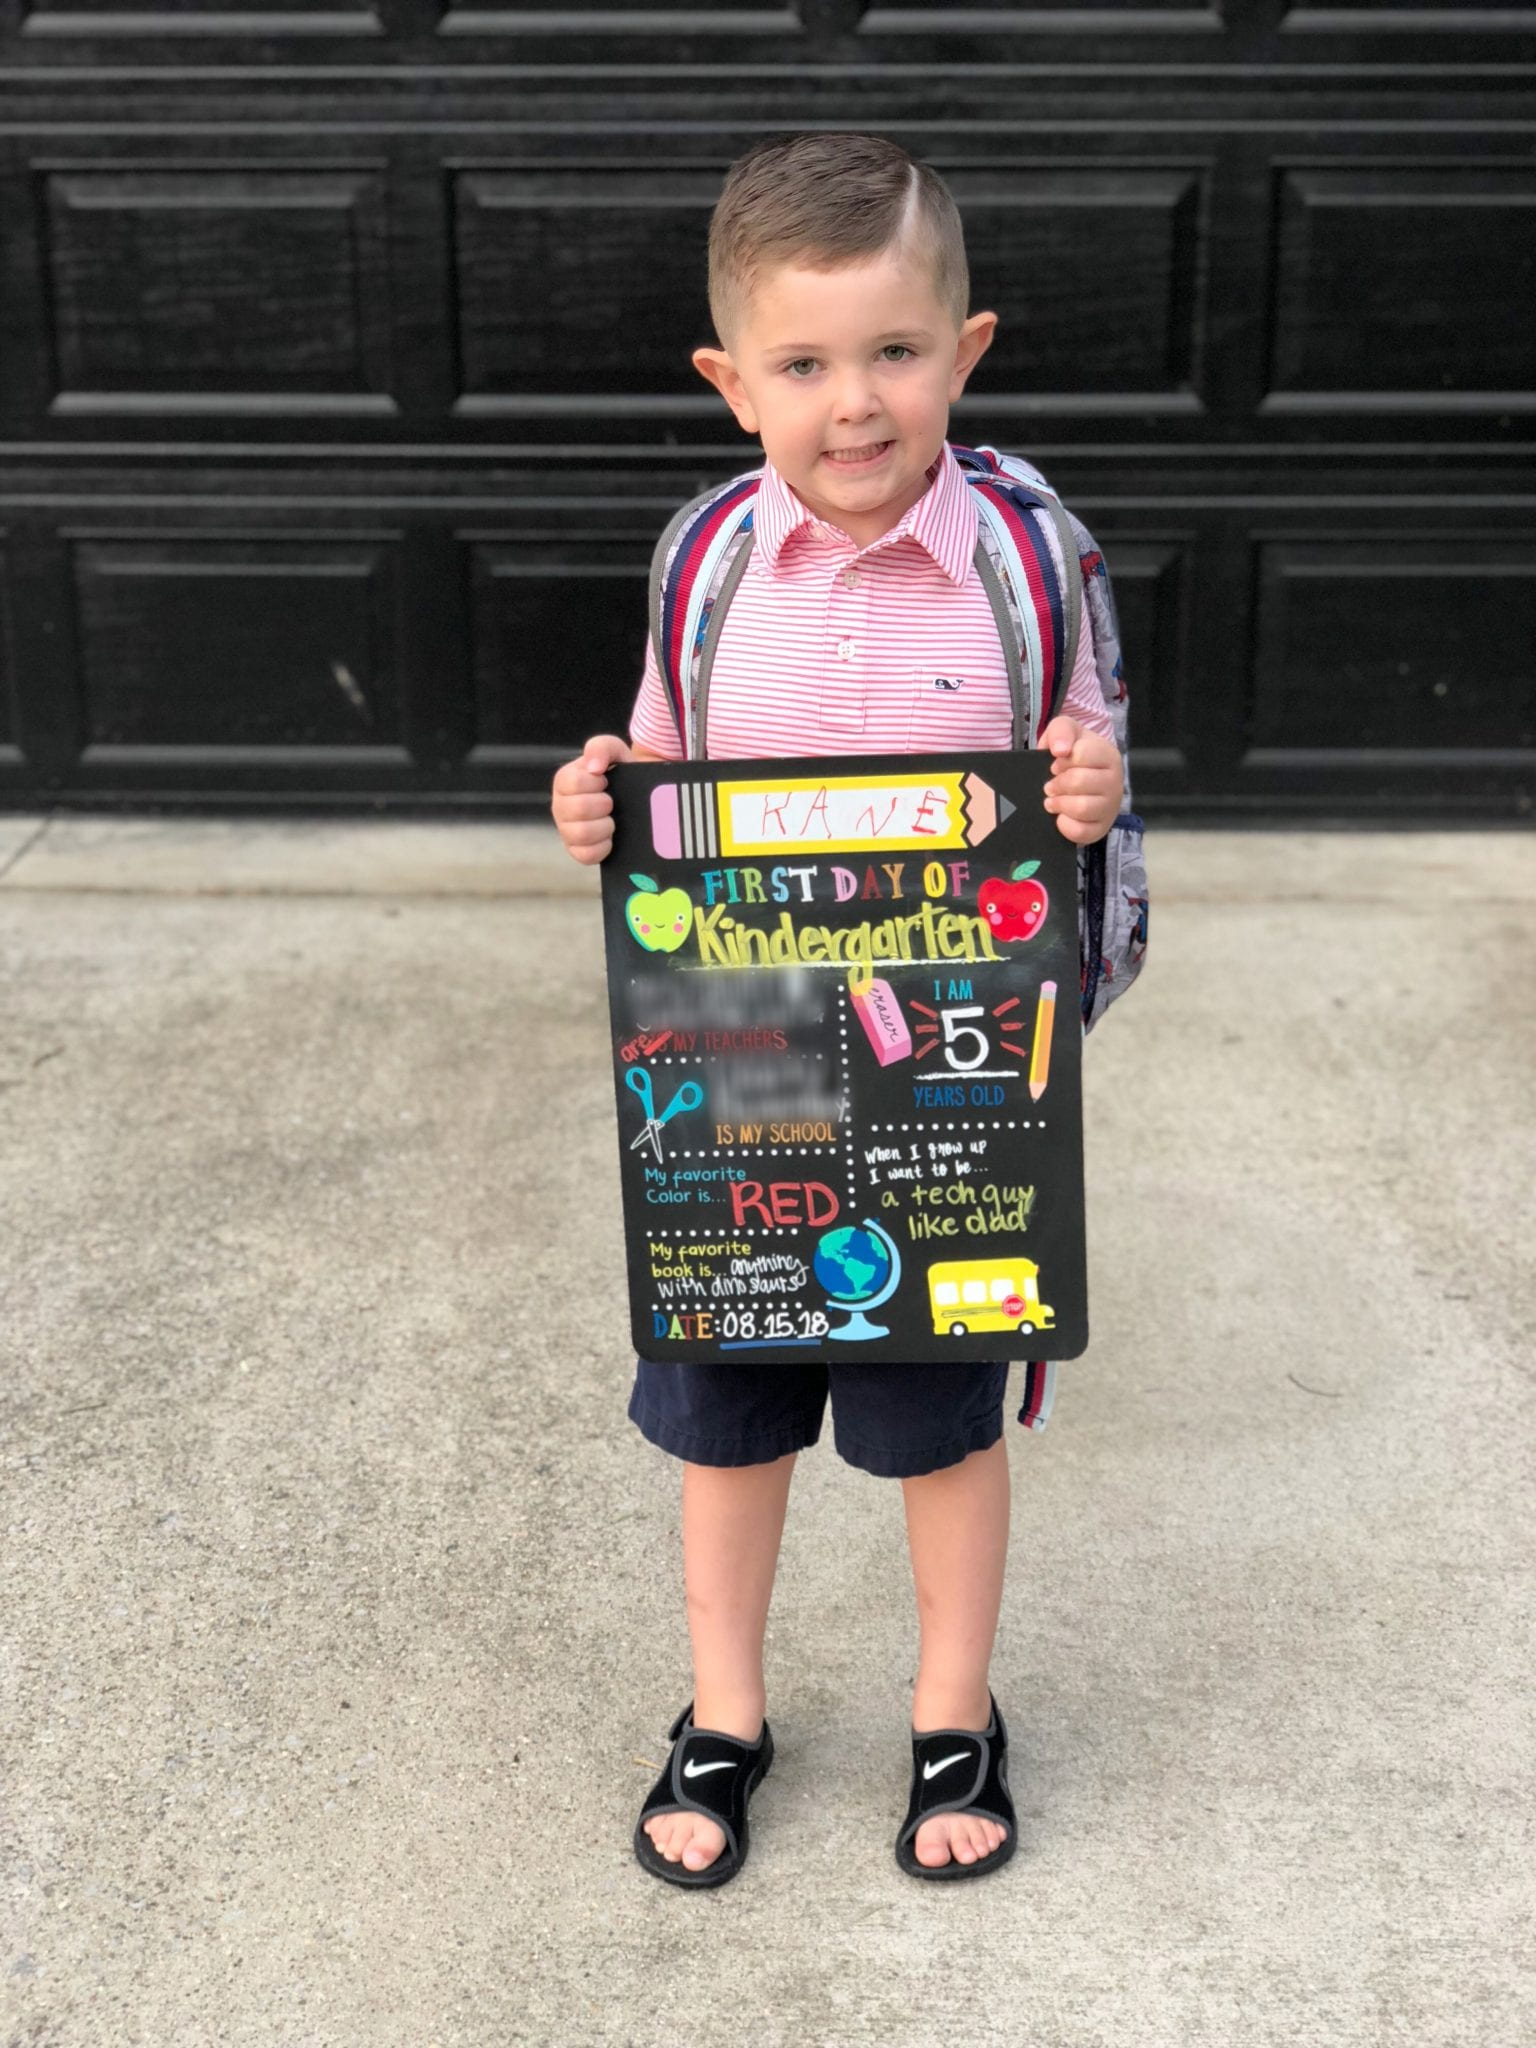 A letter to my son on his first day of Kindergarten. Parenting tips and advice for starting school.